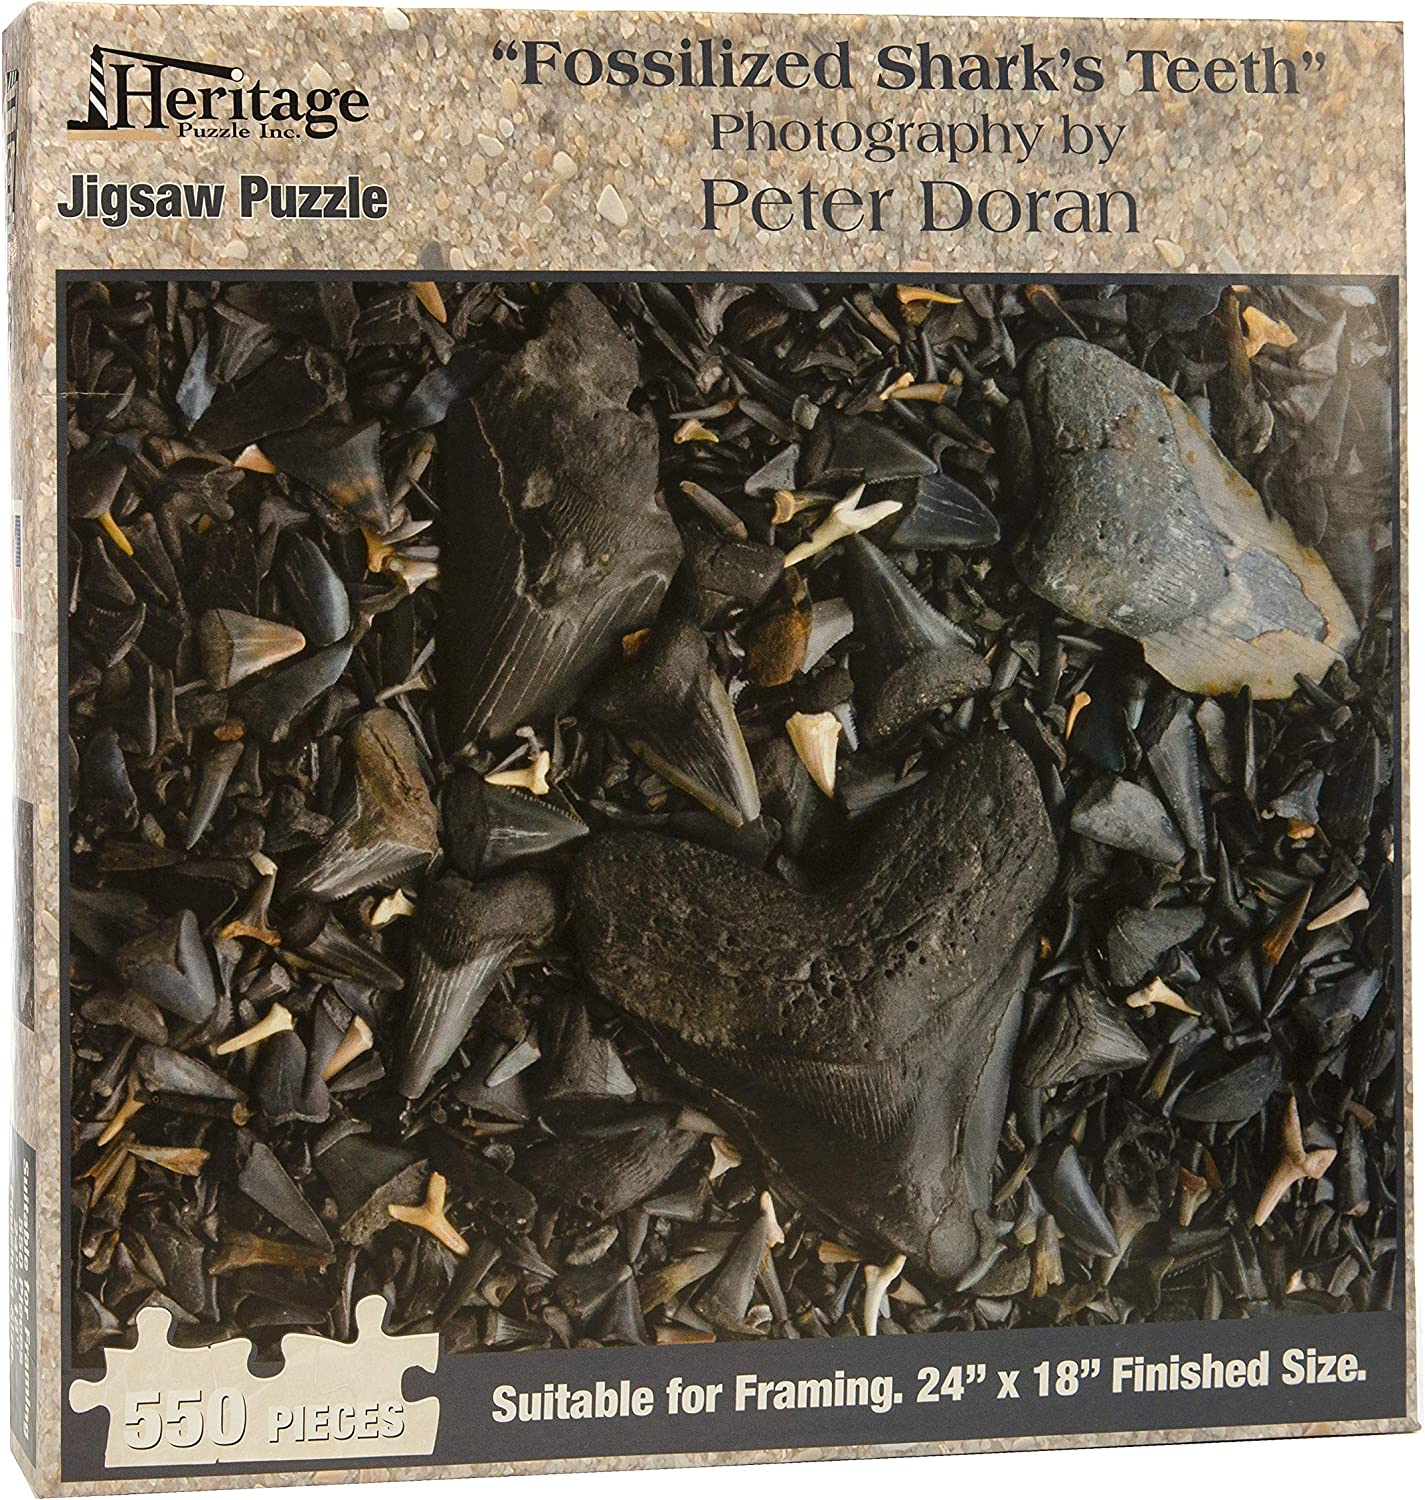 Heritage Puzzle Fossilized Shark's Teeth - 550 Piece Jigsaw Puzzle